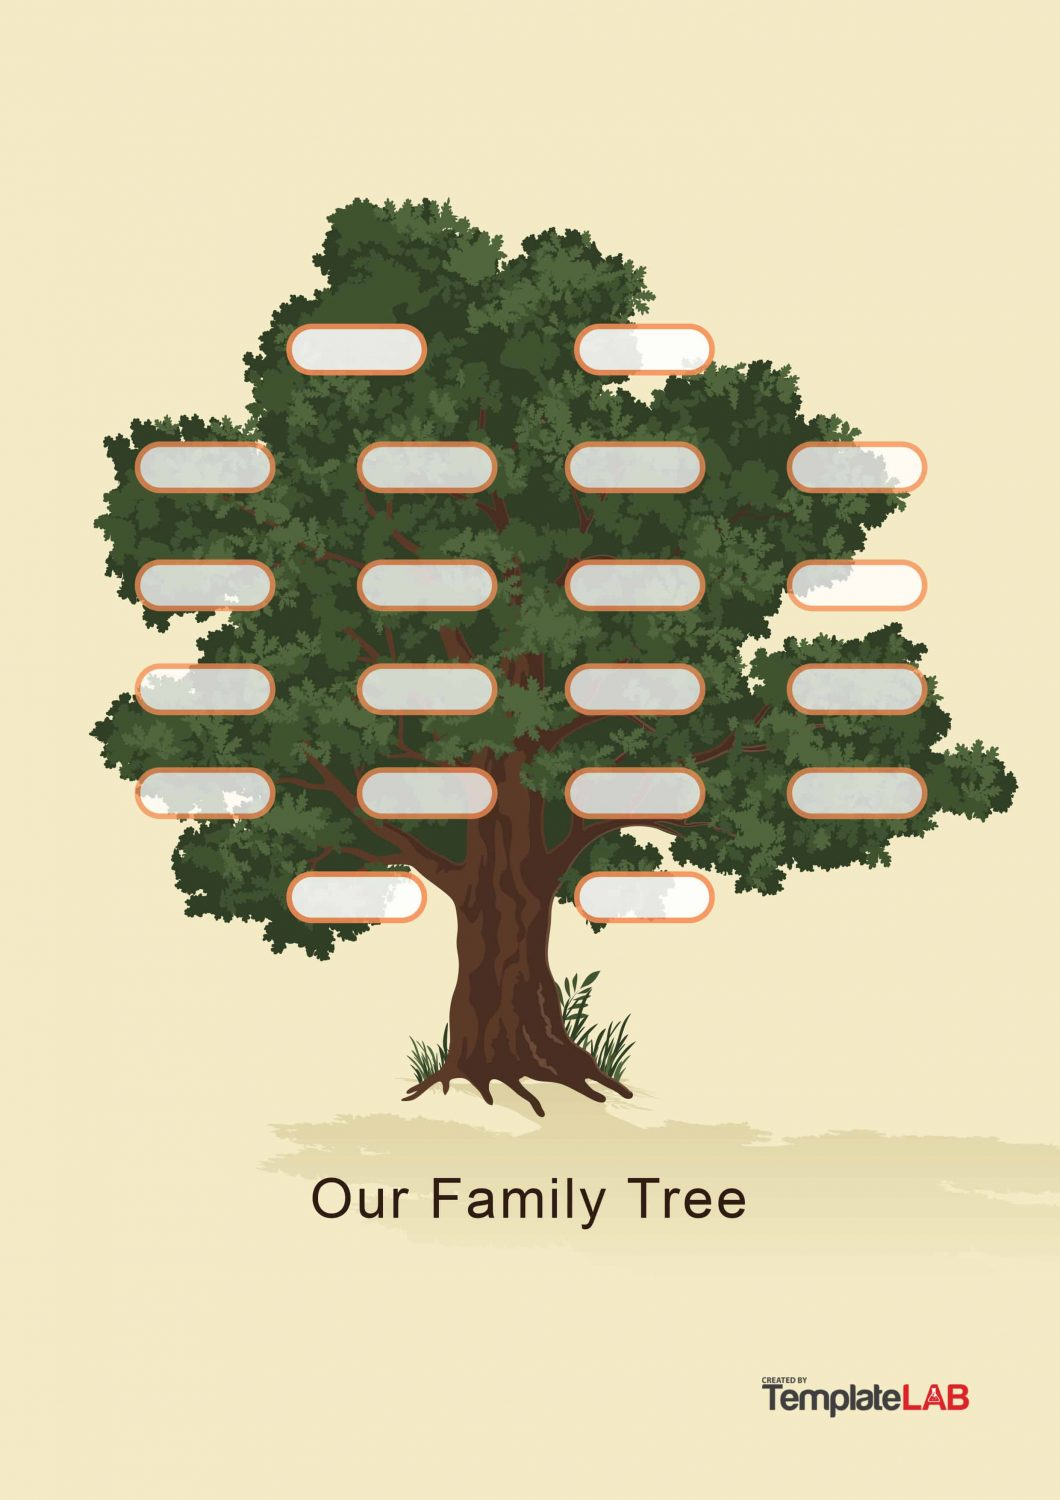 Family Tree Scrapbook Templates Free Vincegray2014